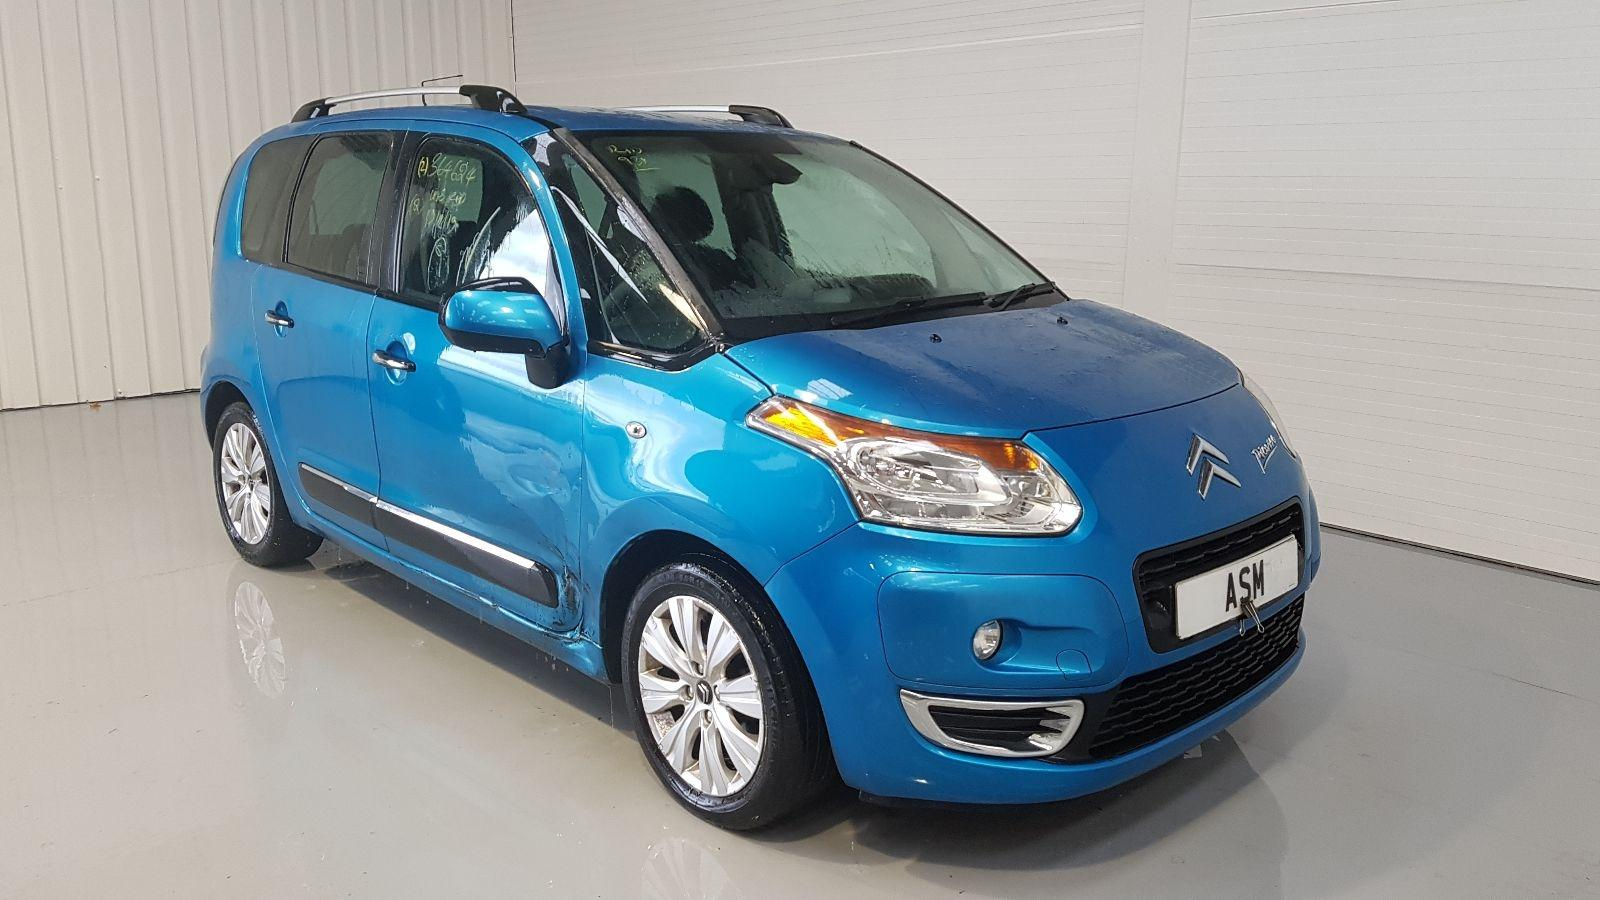 Image for a Citroen C3 Picasso 2010 5 Door Unknown